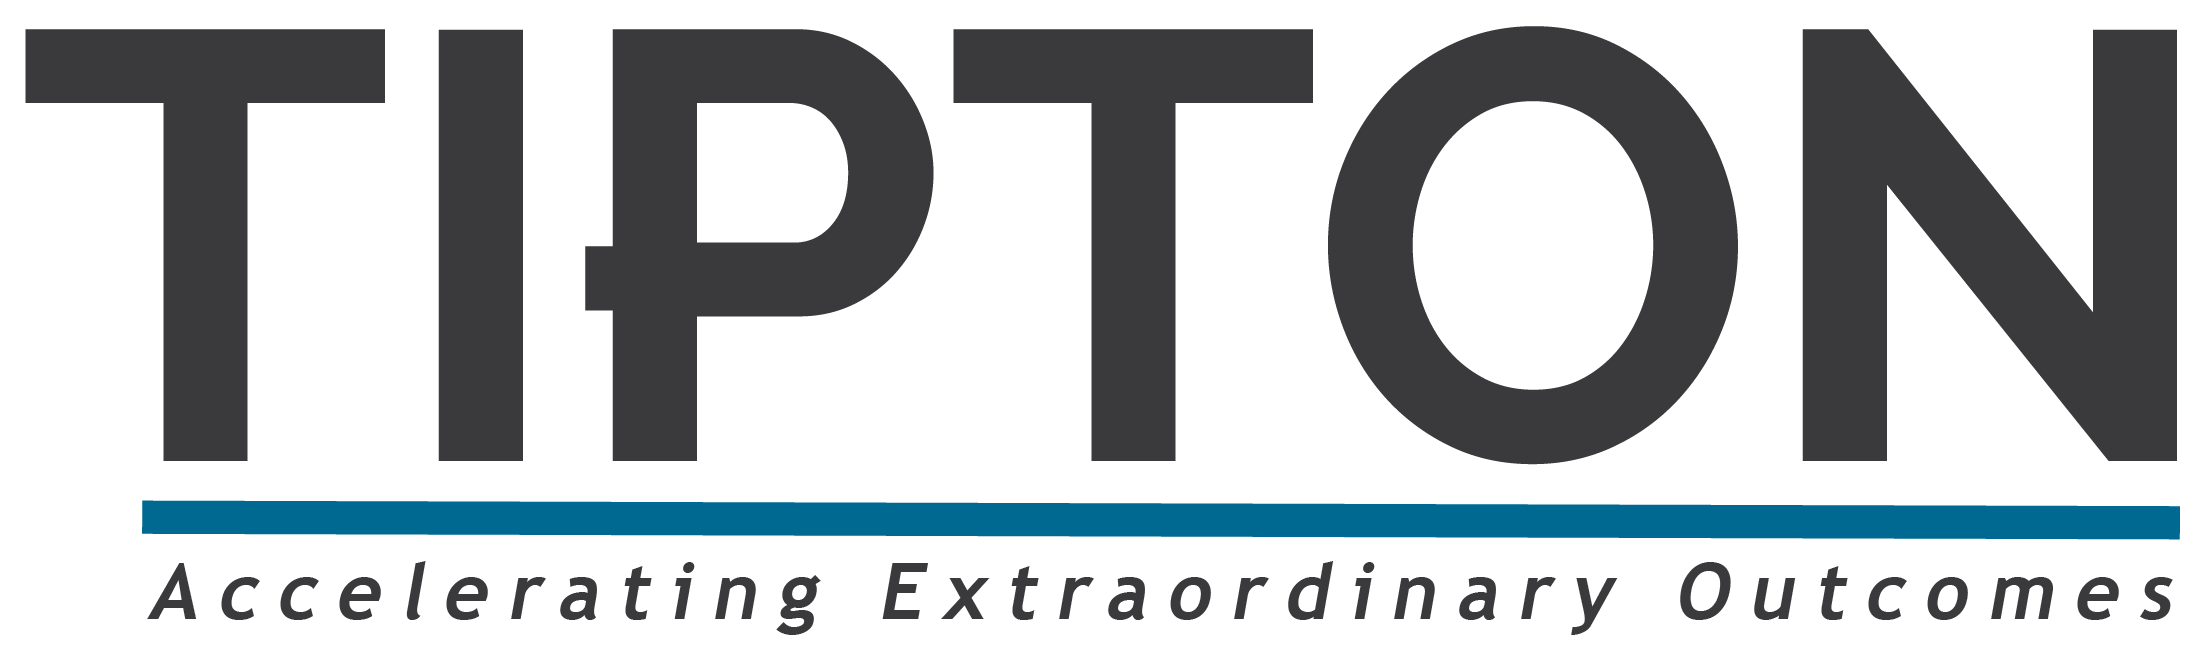 Logo for Team Tipton (R S Tipton, PBC)